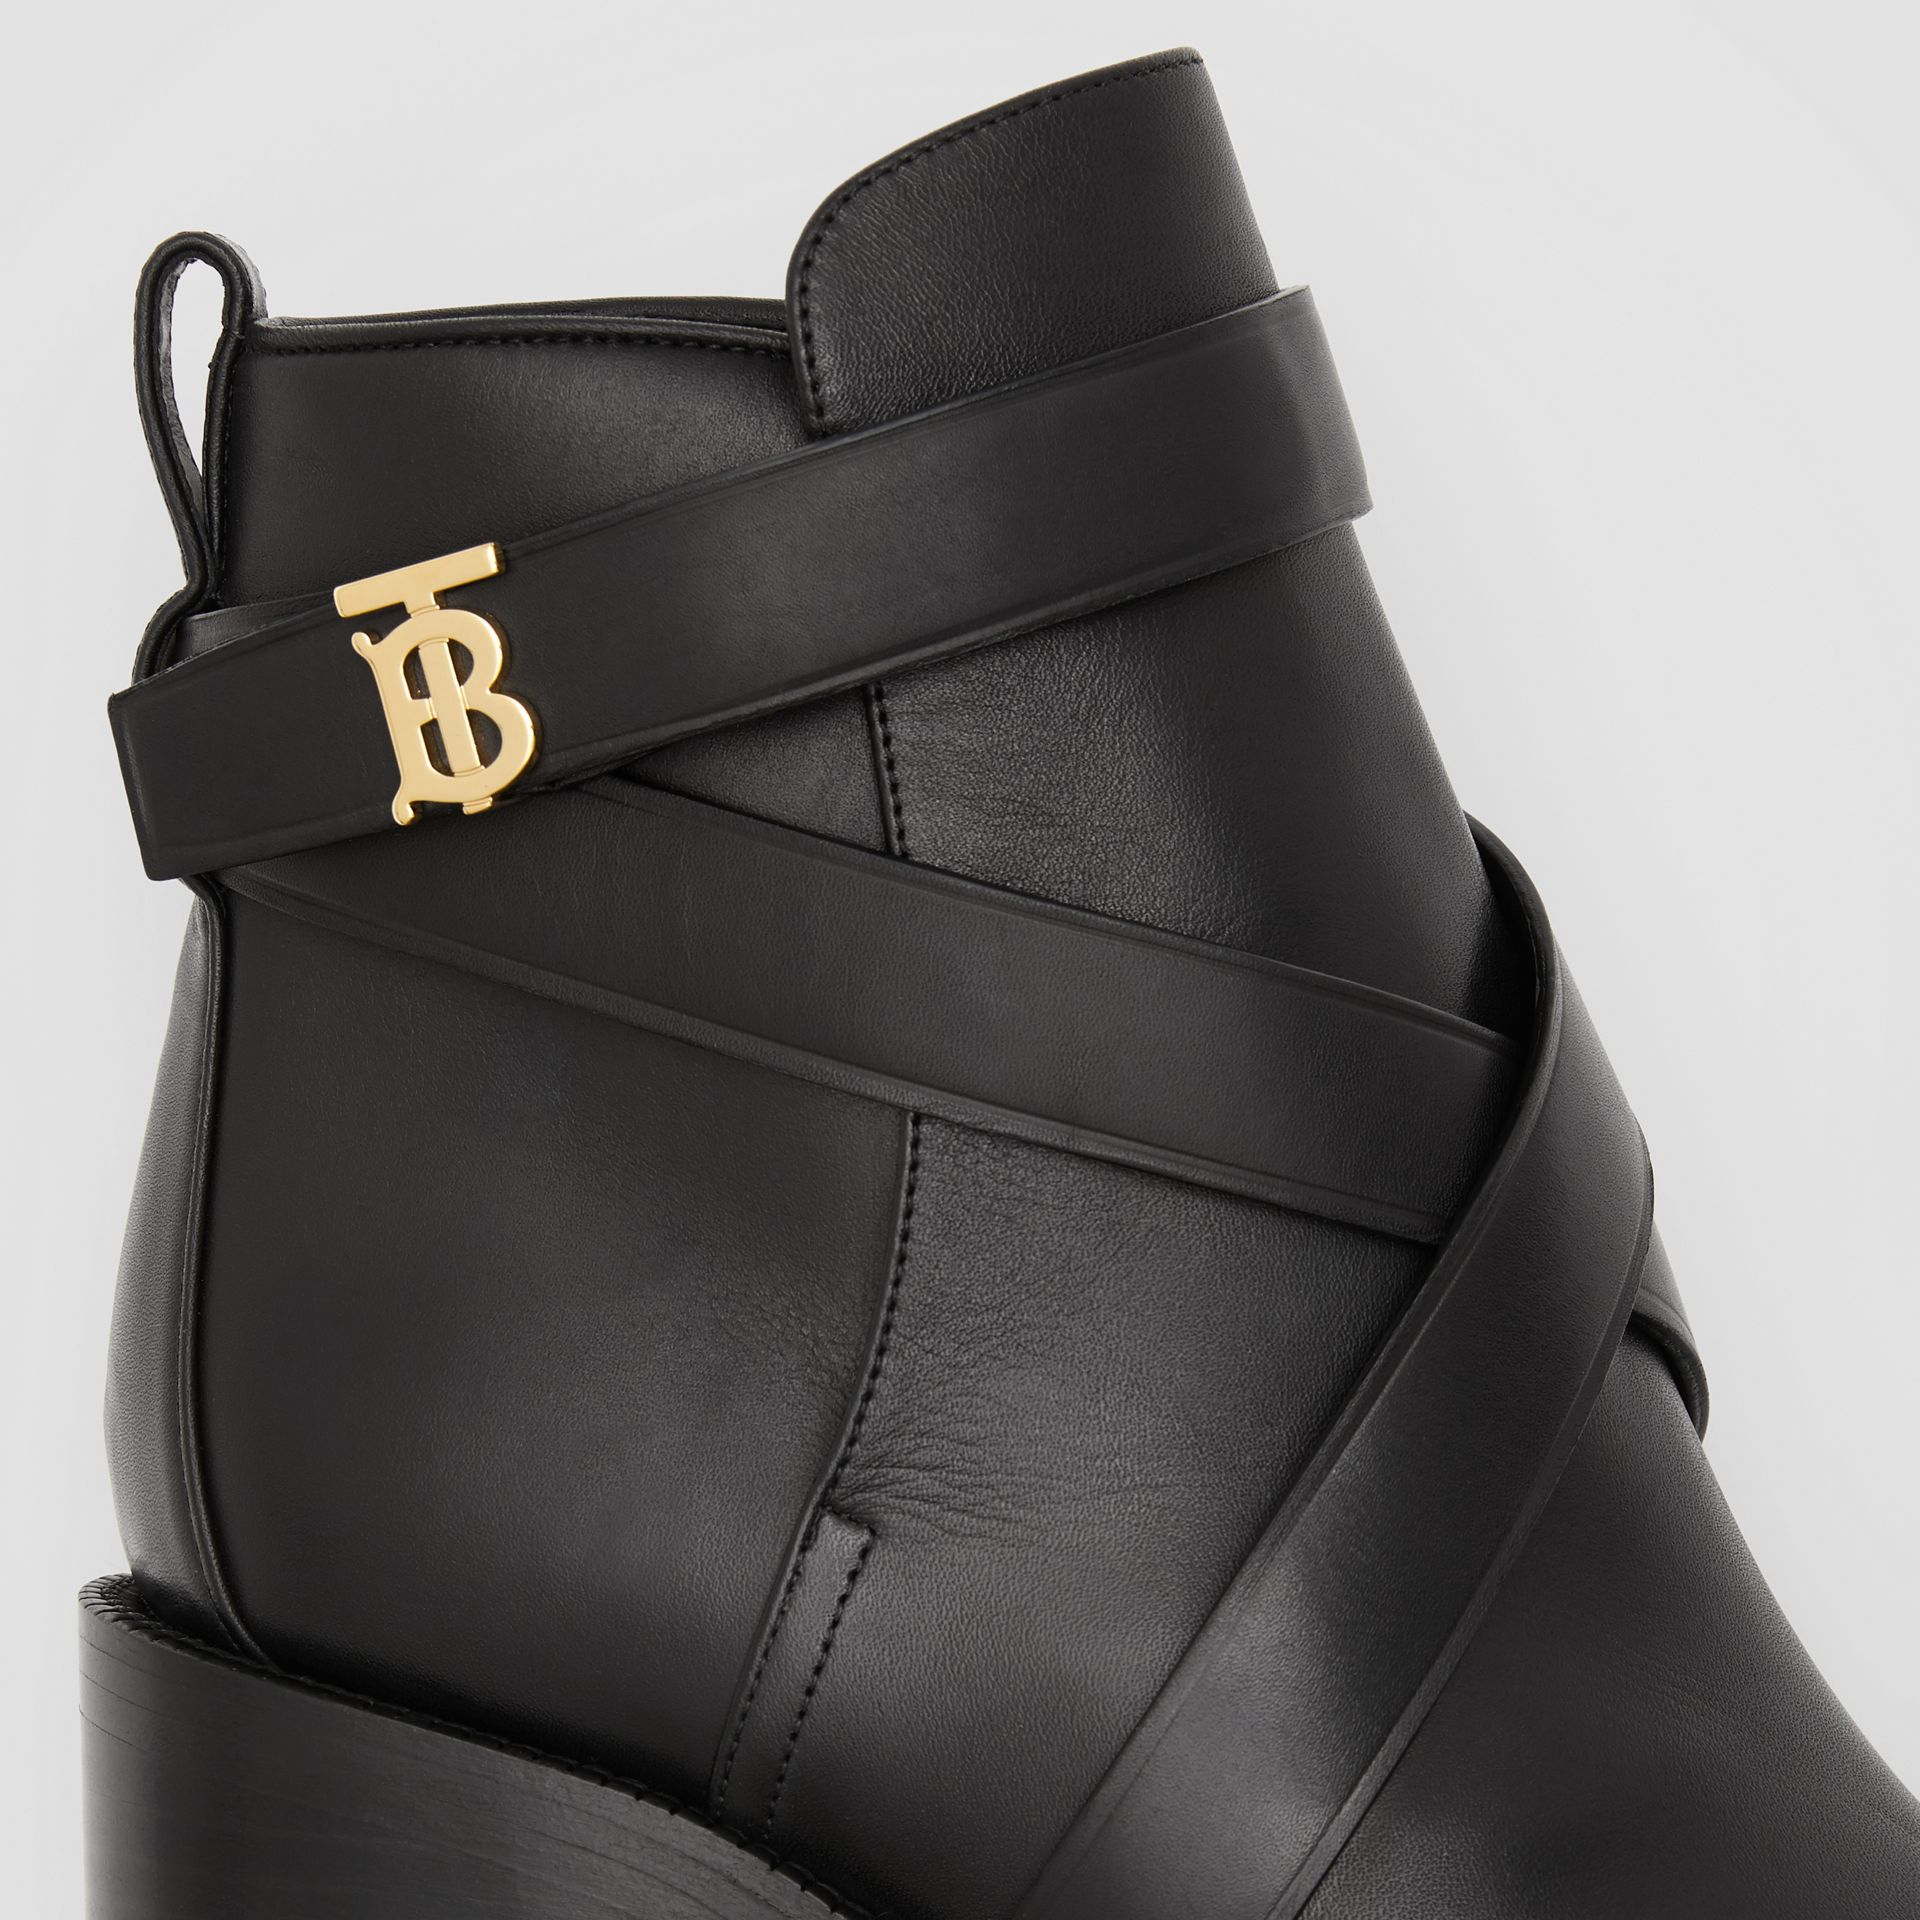 Monogram Motif Leather Ankle Boots in Black - Women | Burberry - gallery image 1